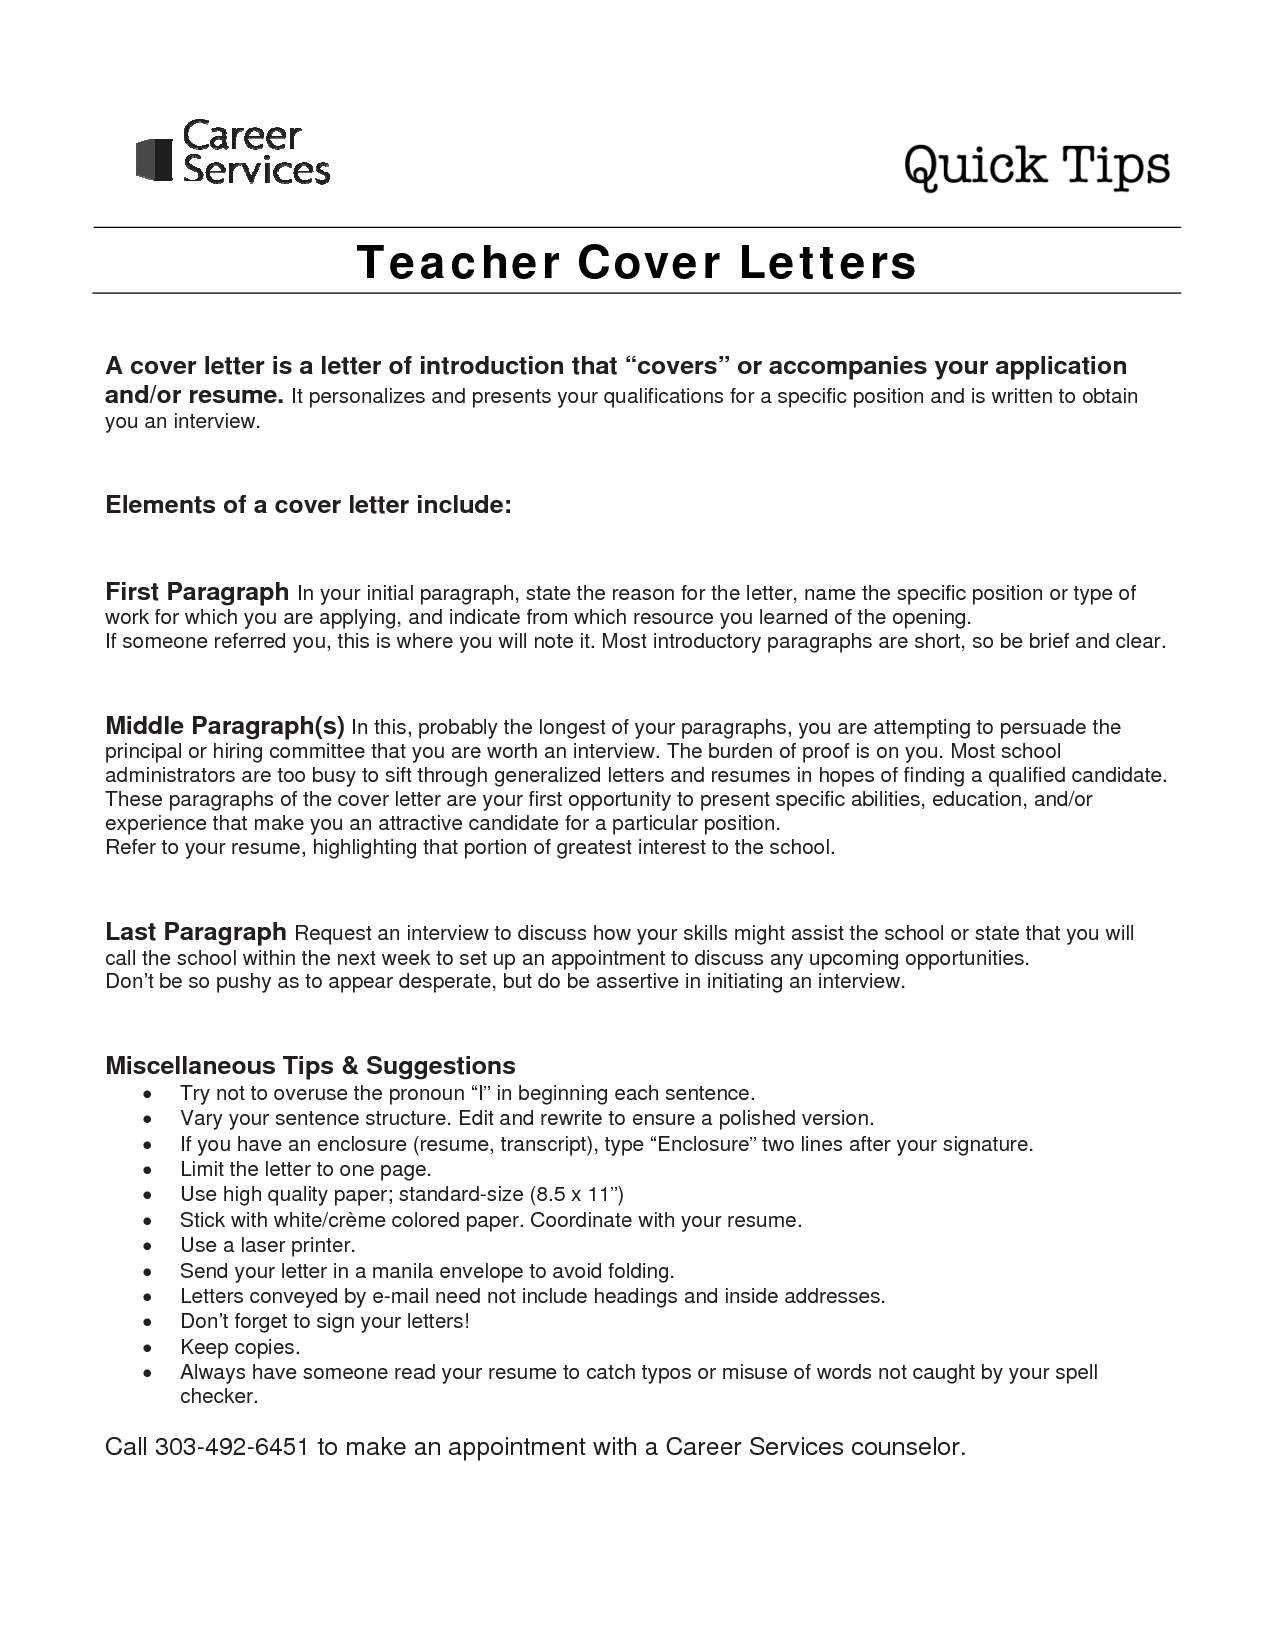 Sample teacher cover letter format samplebusinessresume picture gallery of sample teacher cover letter format yelopaper Gallery